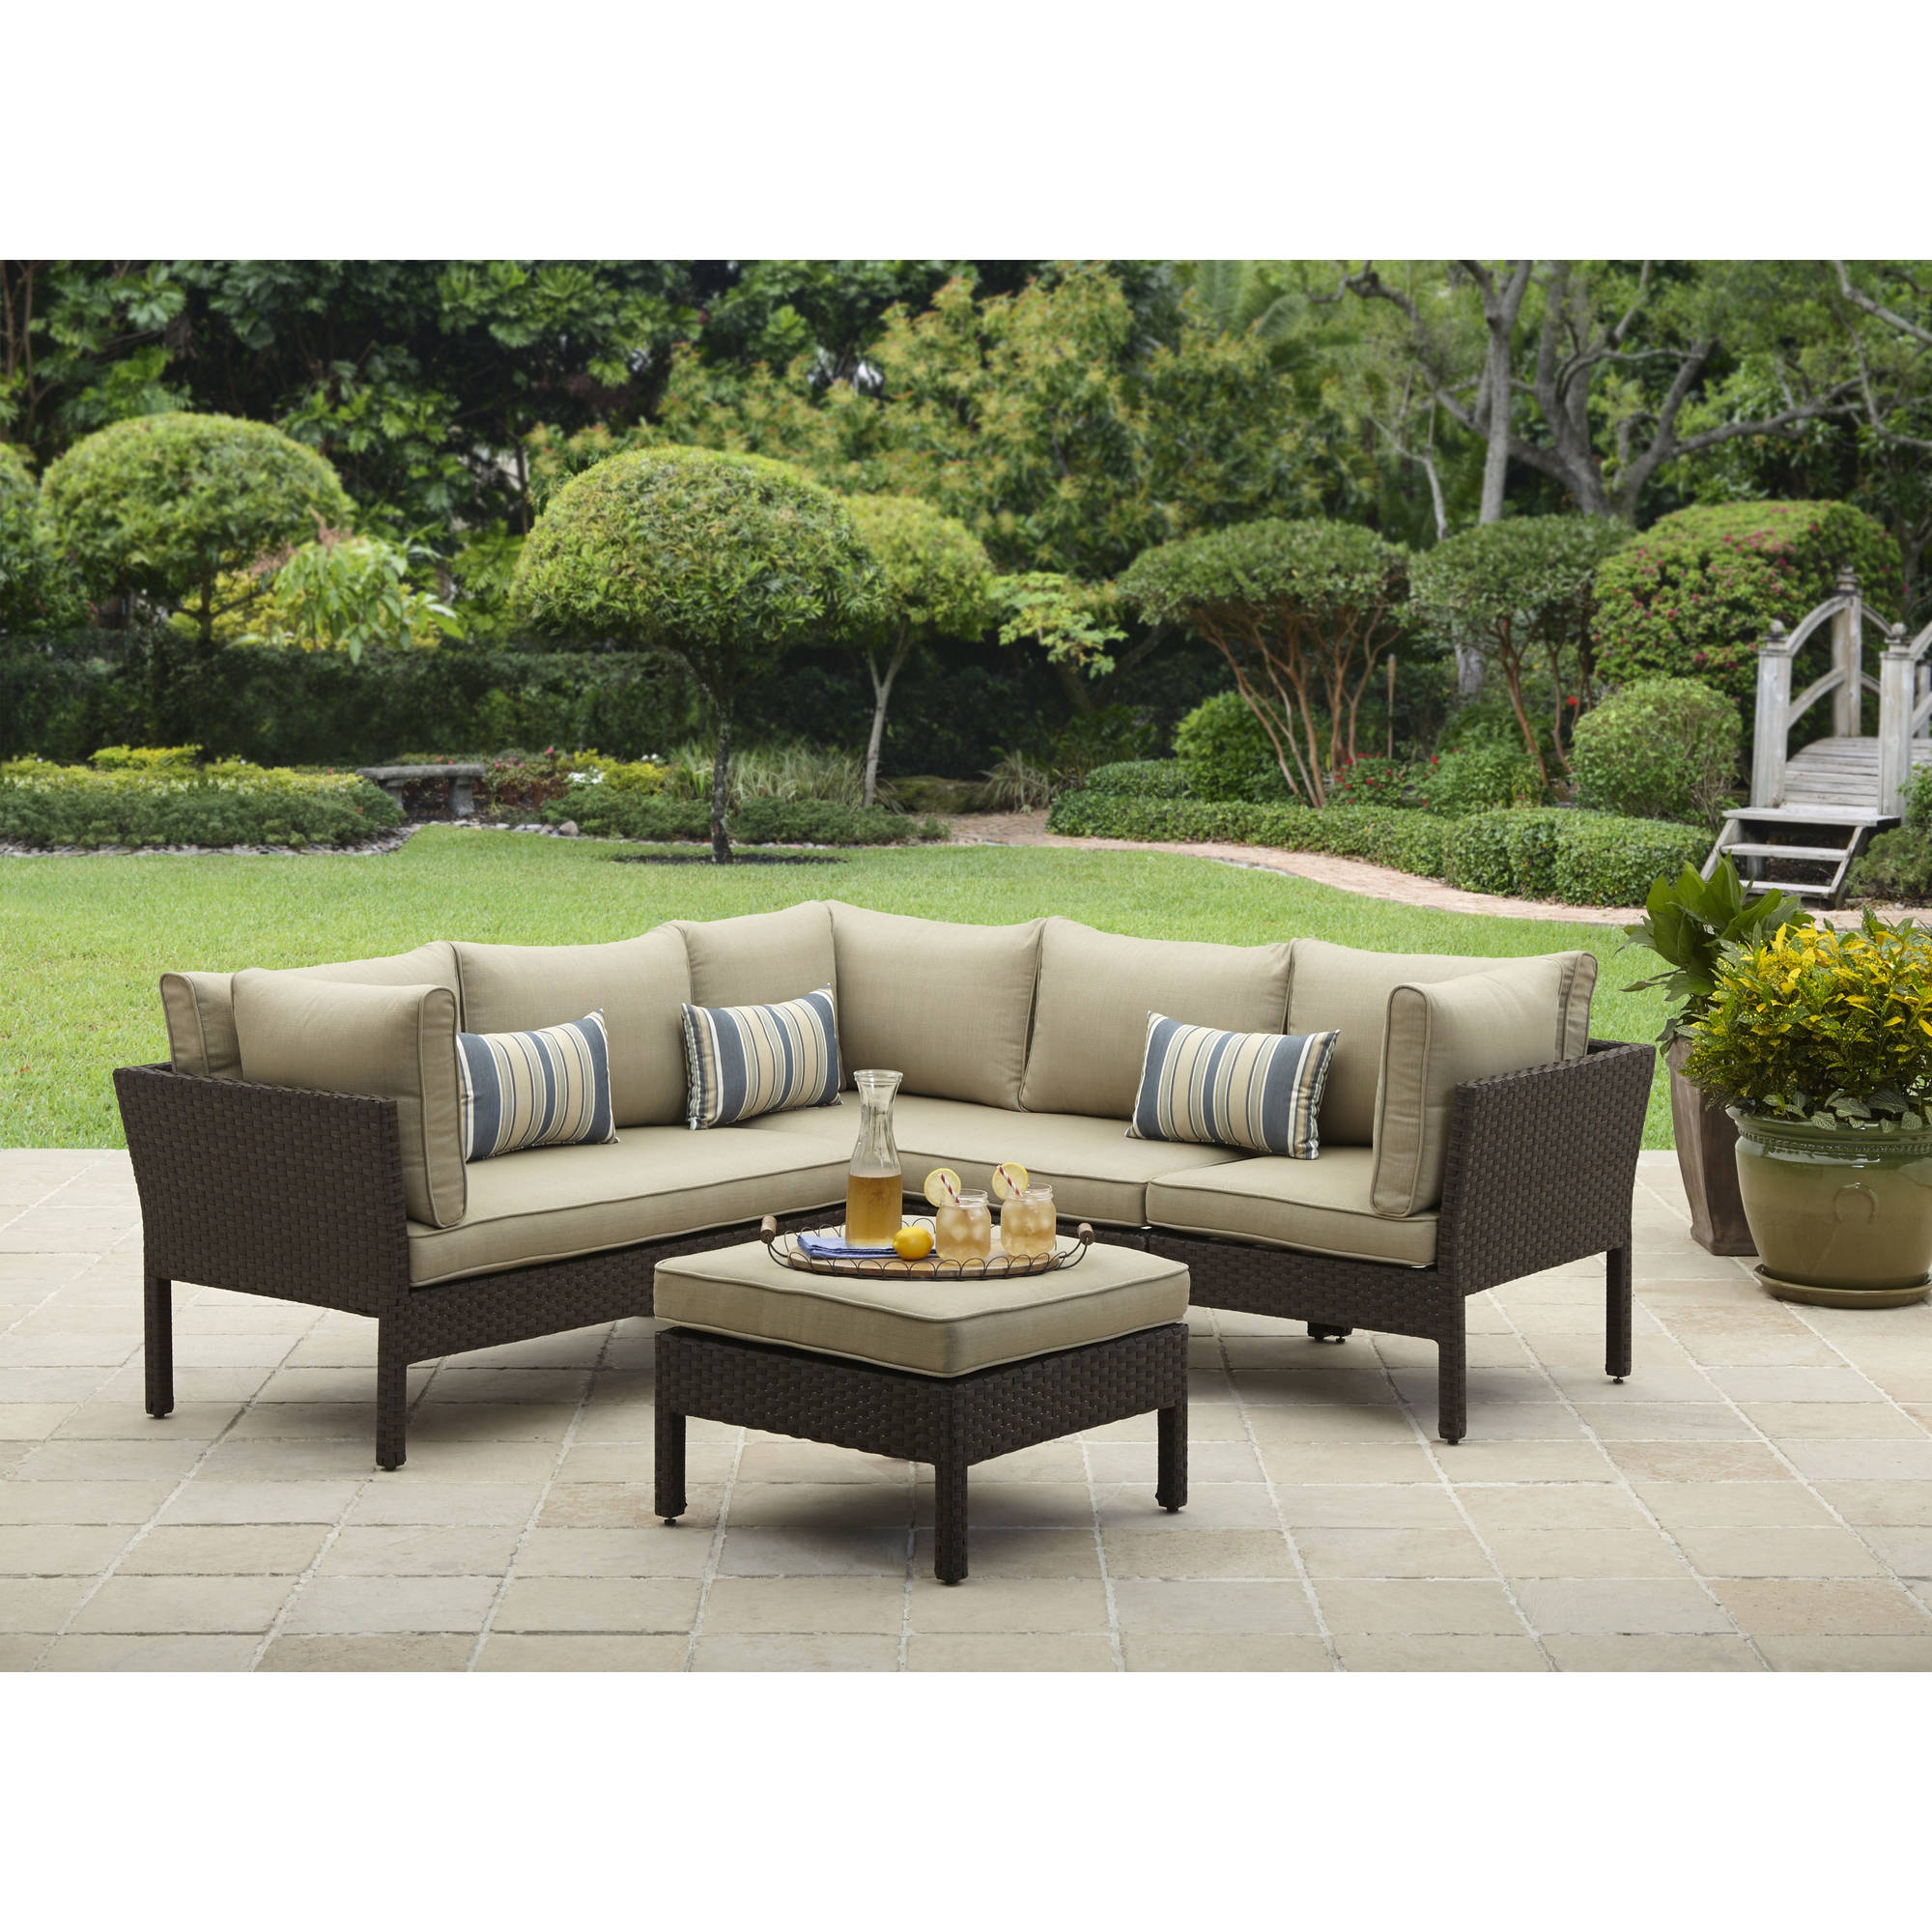 hayneedle biltmore set cfm outdoor piece conversation sectional master wicker crosley product bradenton